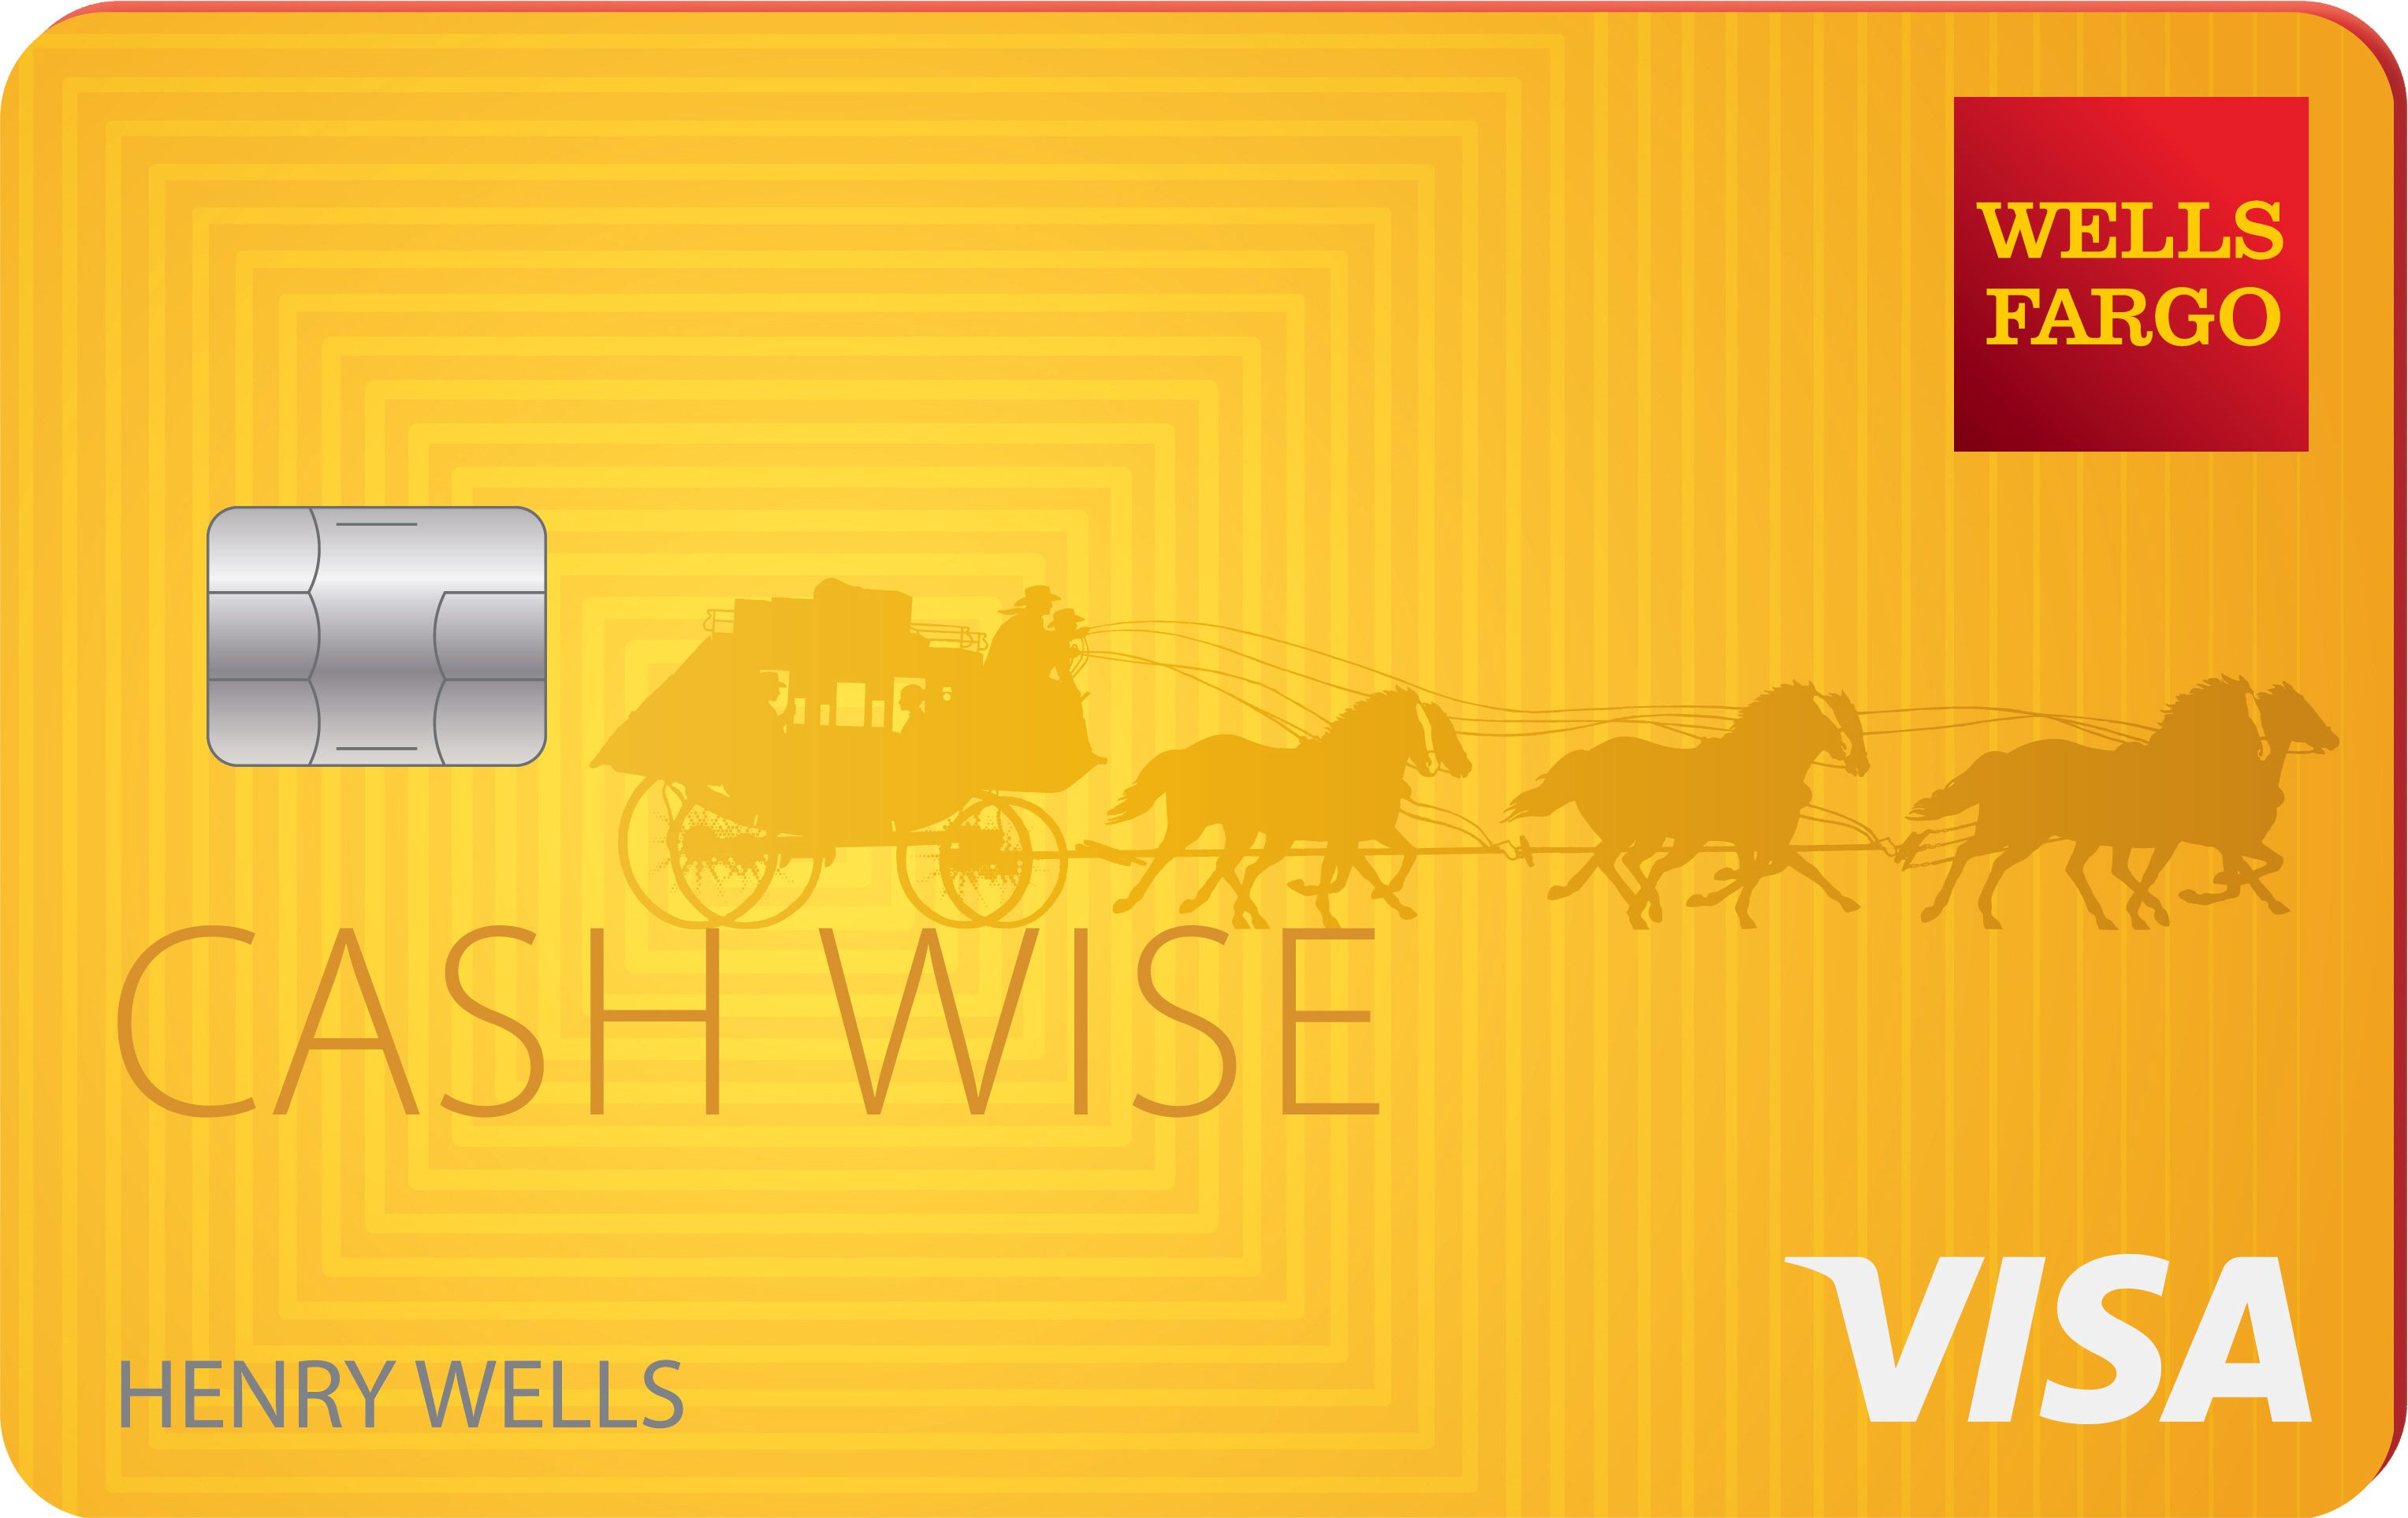 Wells Fargo Cash Wise Credit Card Review